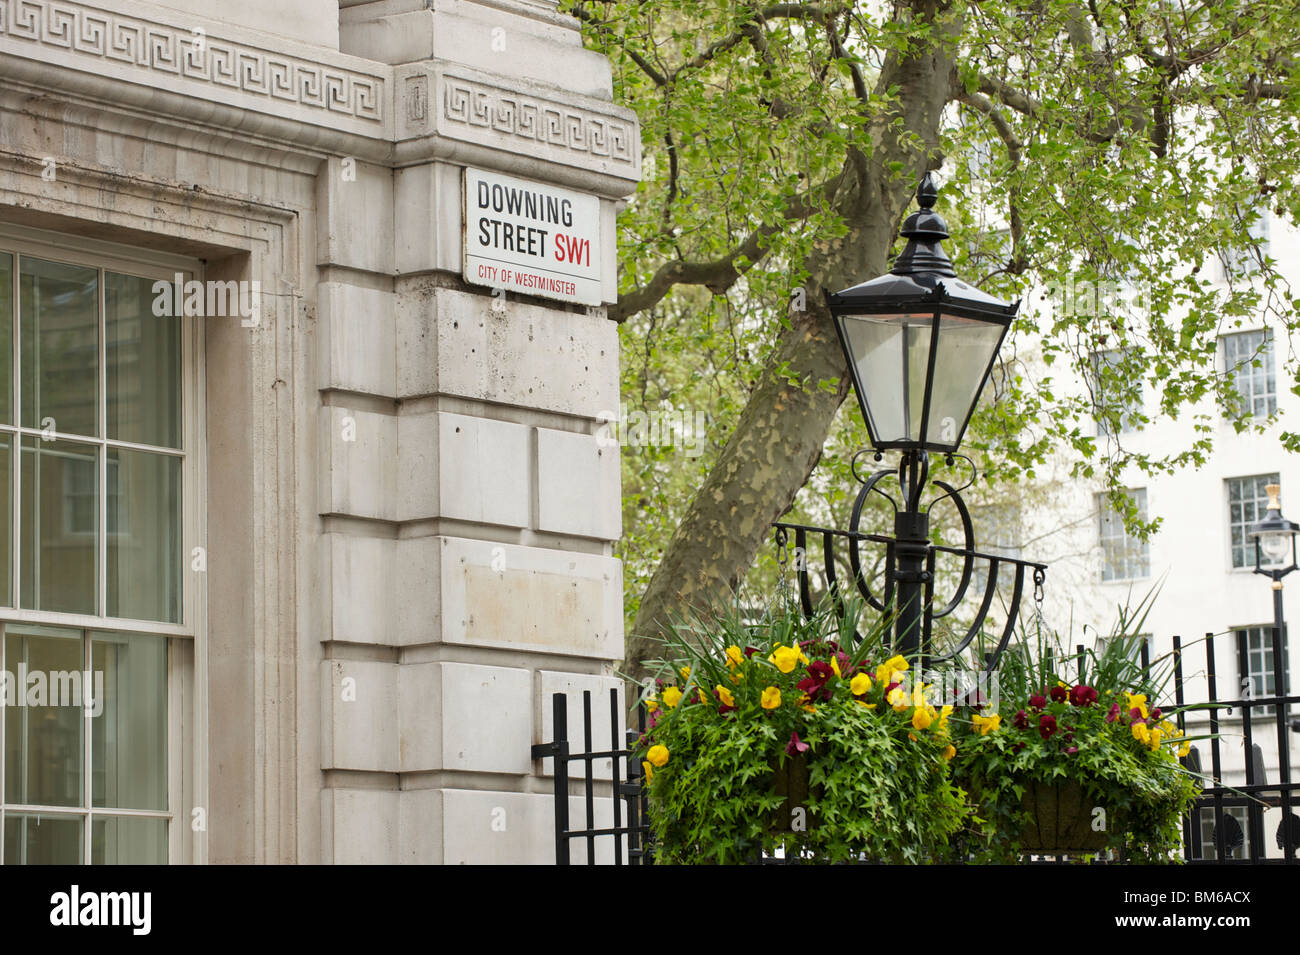 Downing Street sign - Stock Image